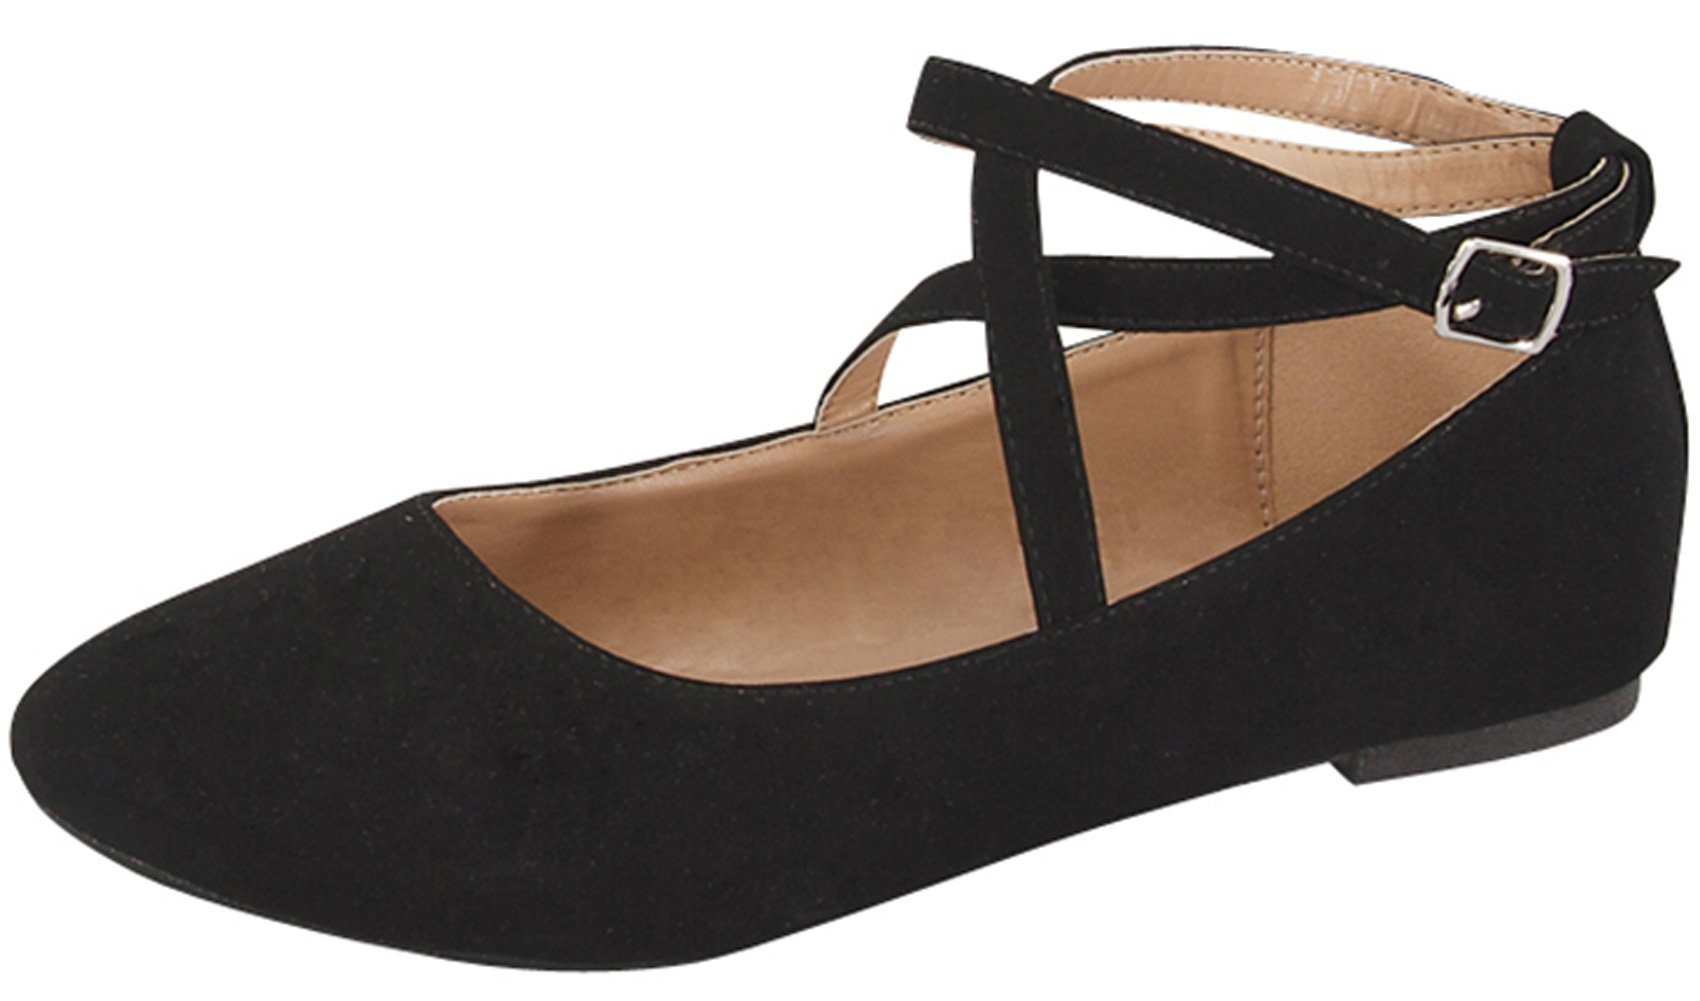 Top Moda Women's Brea-3 Strappy Ballet Flat (8 B(M) US, Black) by Top Moda (Image #1)